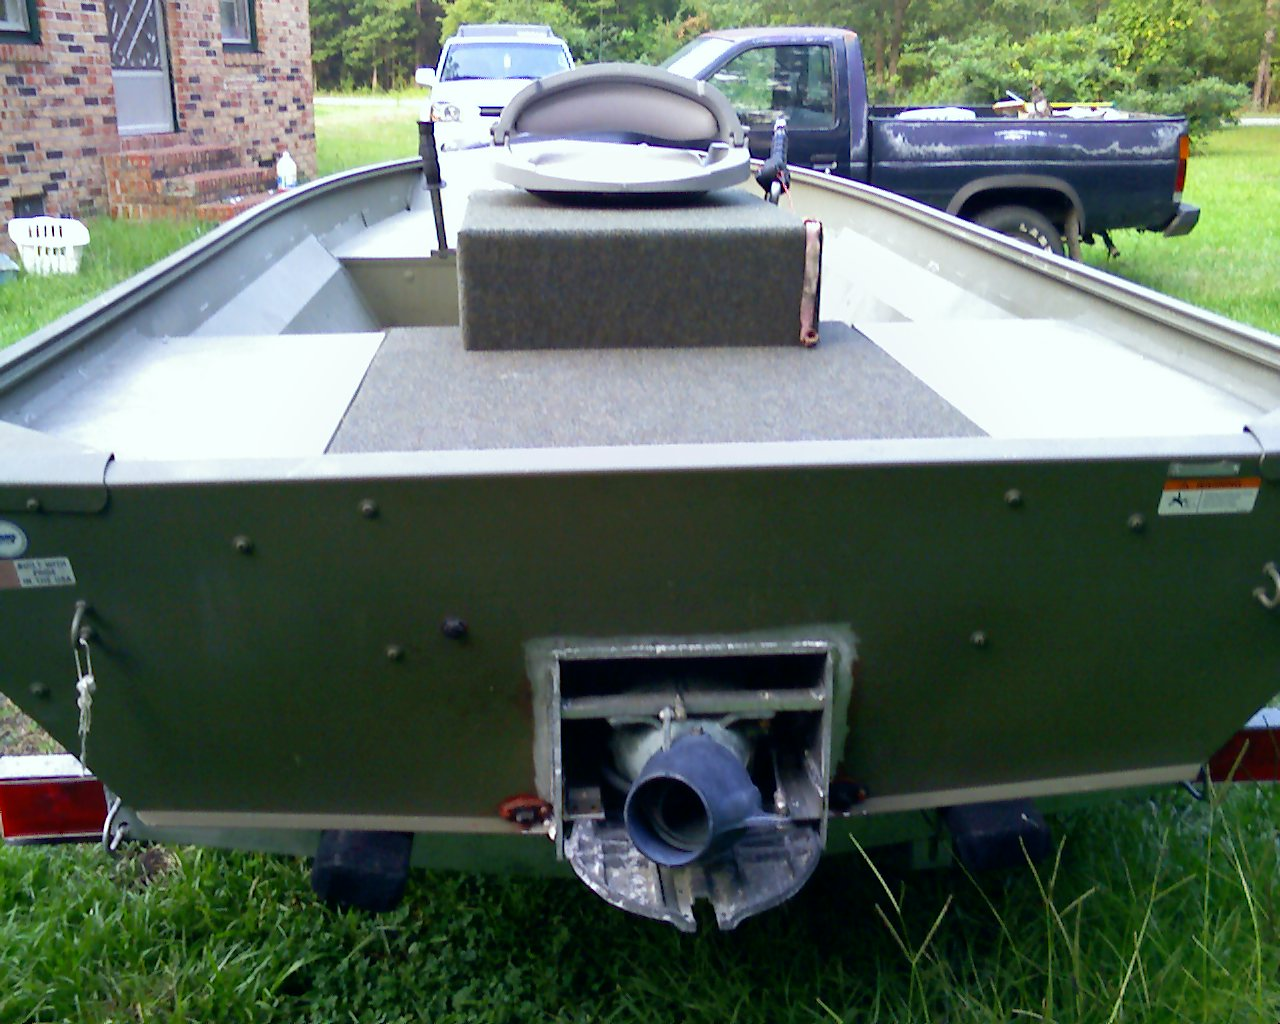 87 Jet Jon Boat Conversion Pay By Paypal Account To Brunerspcservicesyahoo Jon Boat